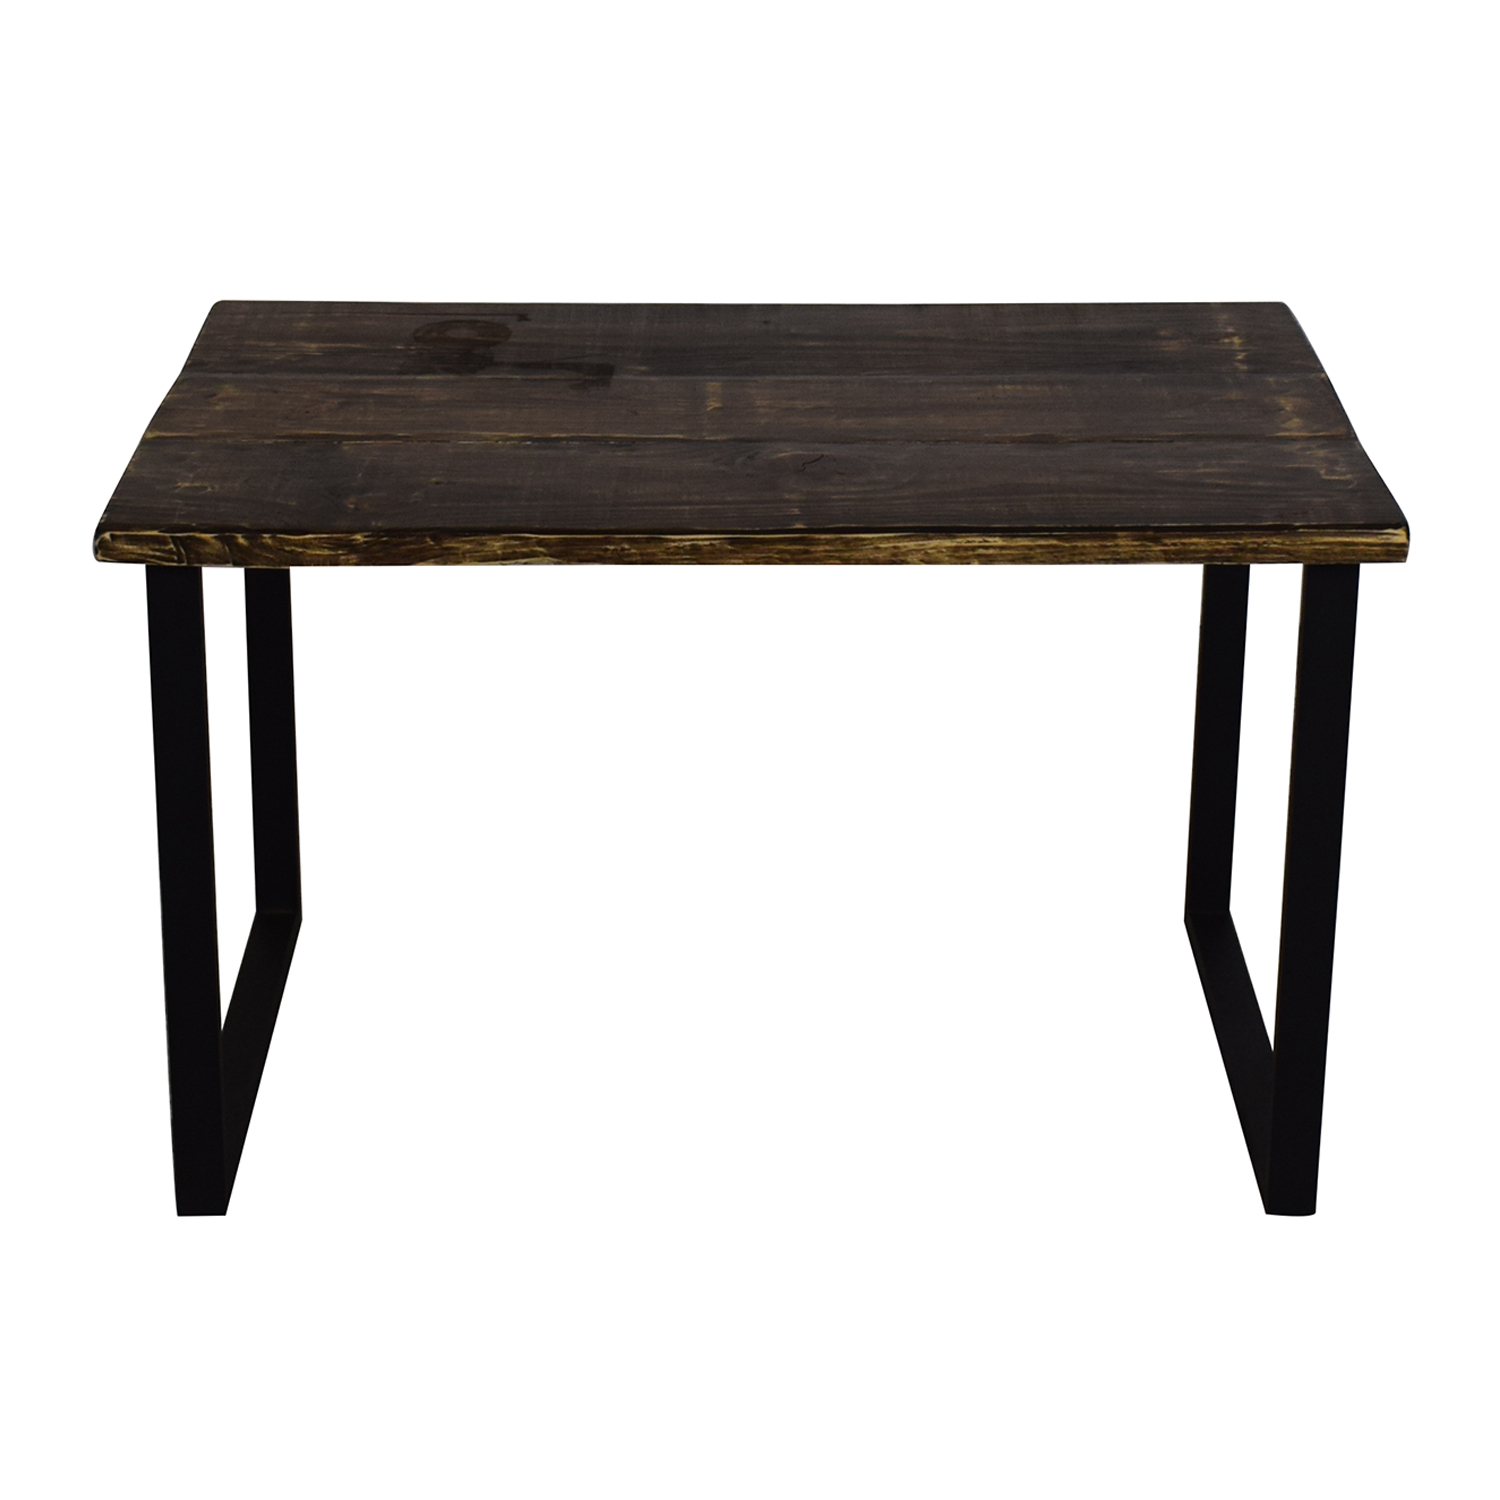 54 Off Etsy Wood Table Or Desk